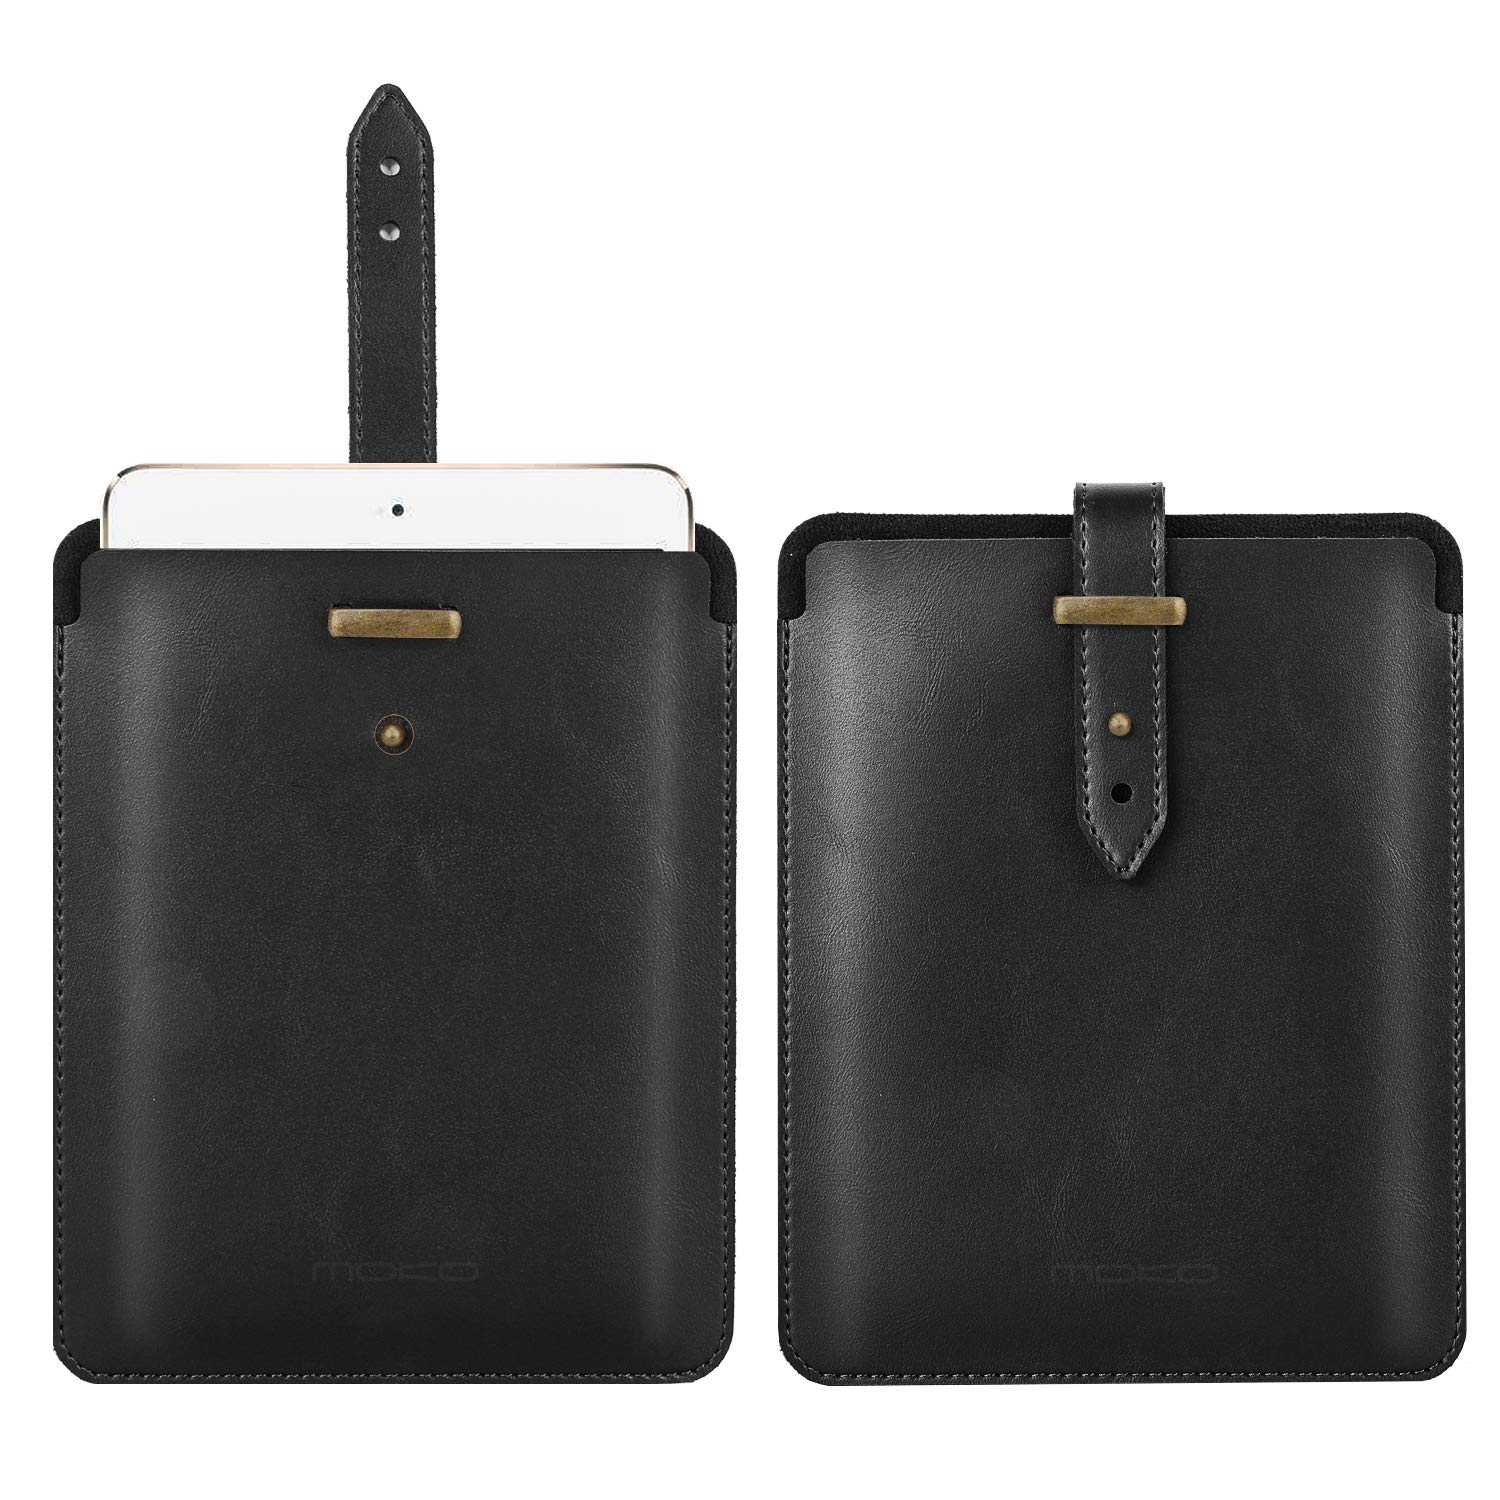 MoKo 7.9 Inch Sleeve Case Compatible with iPad Mini 4/3 / 2/1, New iPad Mini 5 2019 (5th Generation 7.9 inch), PU Leather Protective Lightweight Portable Pouch Cover Bag - Black